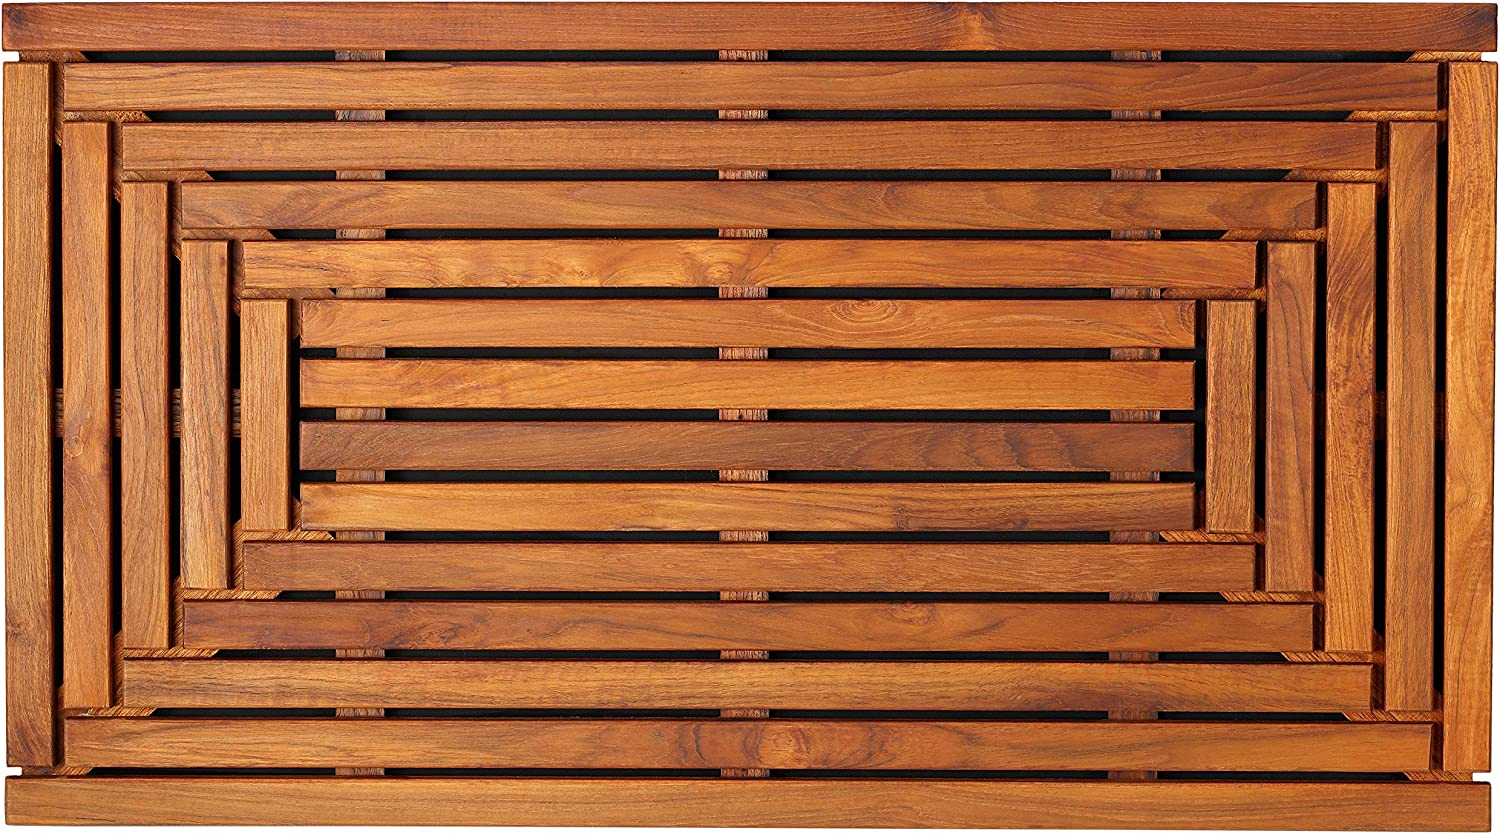 "Bare Decor Giza Shower, Spa, Door Mat in Solid Teak Wood and Oiled Finish 35.5"" x 19.75"": Home & Kitchen"